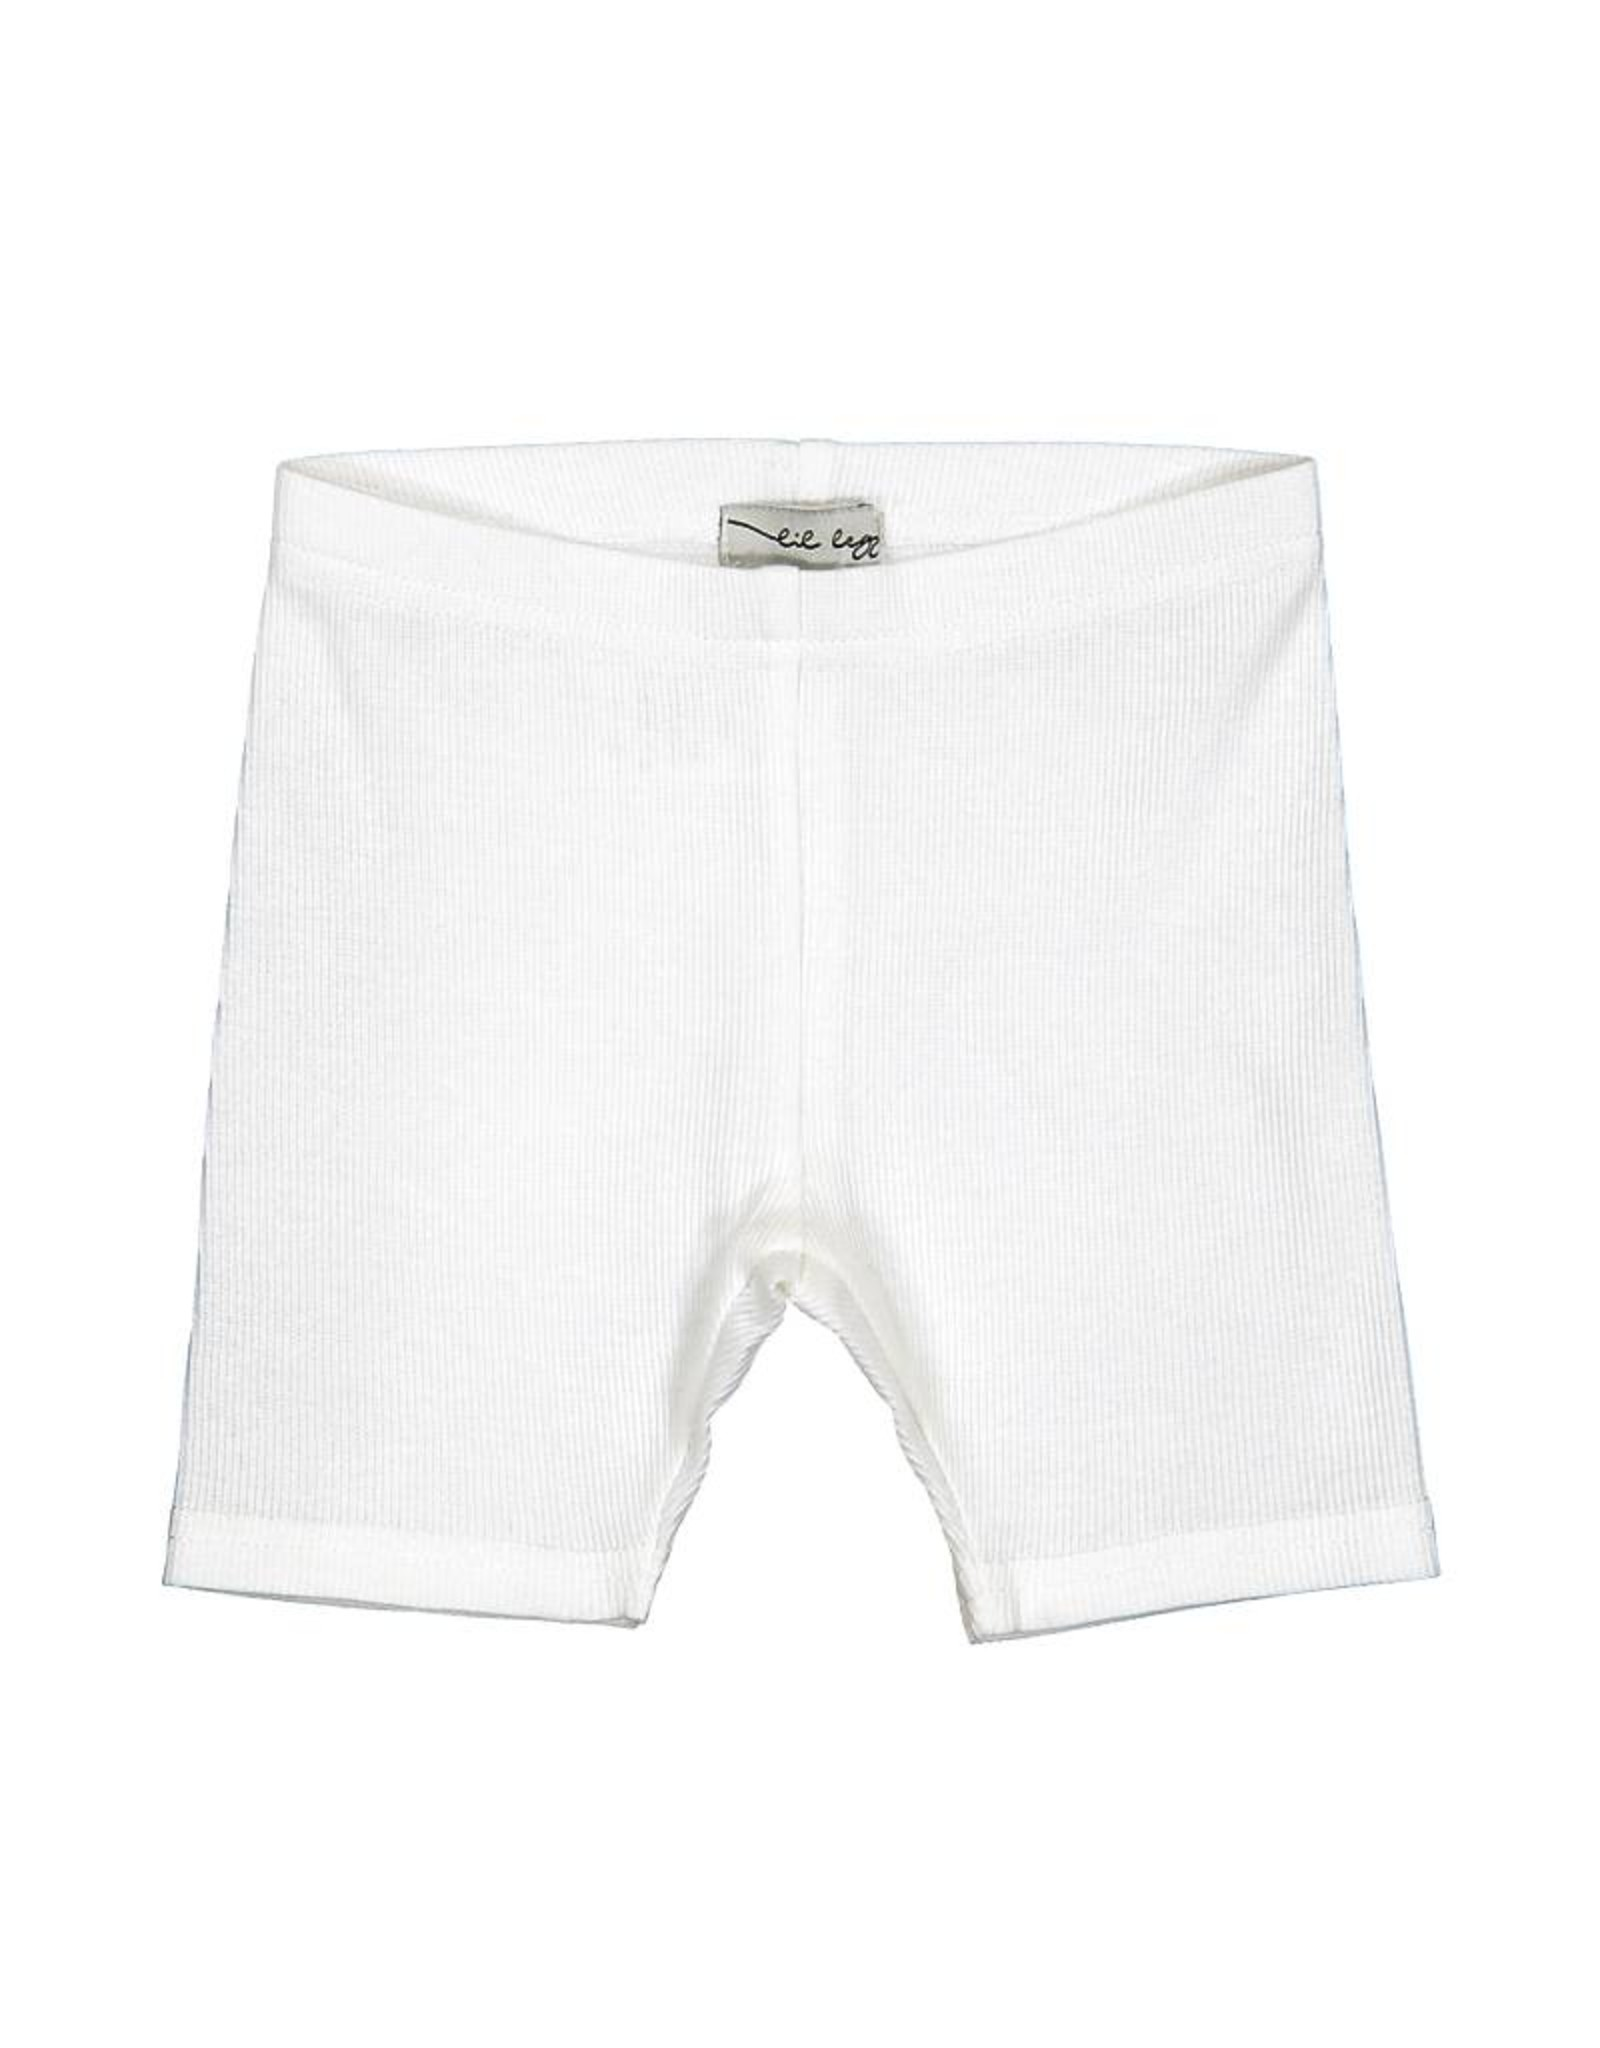 LIL LEGS Spring/Summer Ribbed Shorts Basic Colors